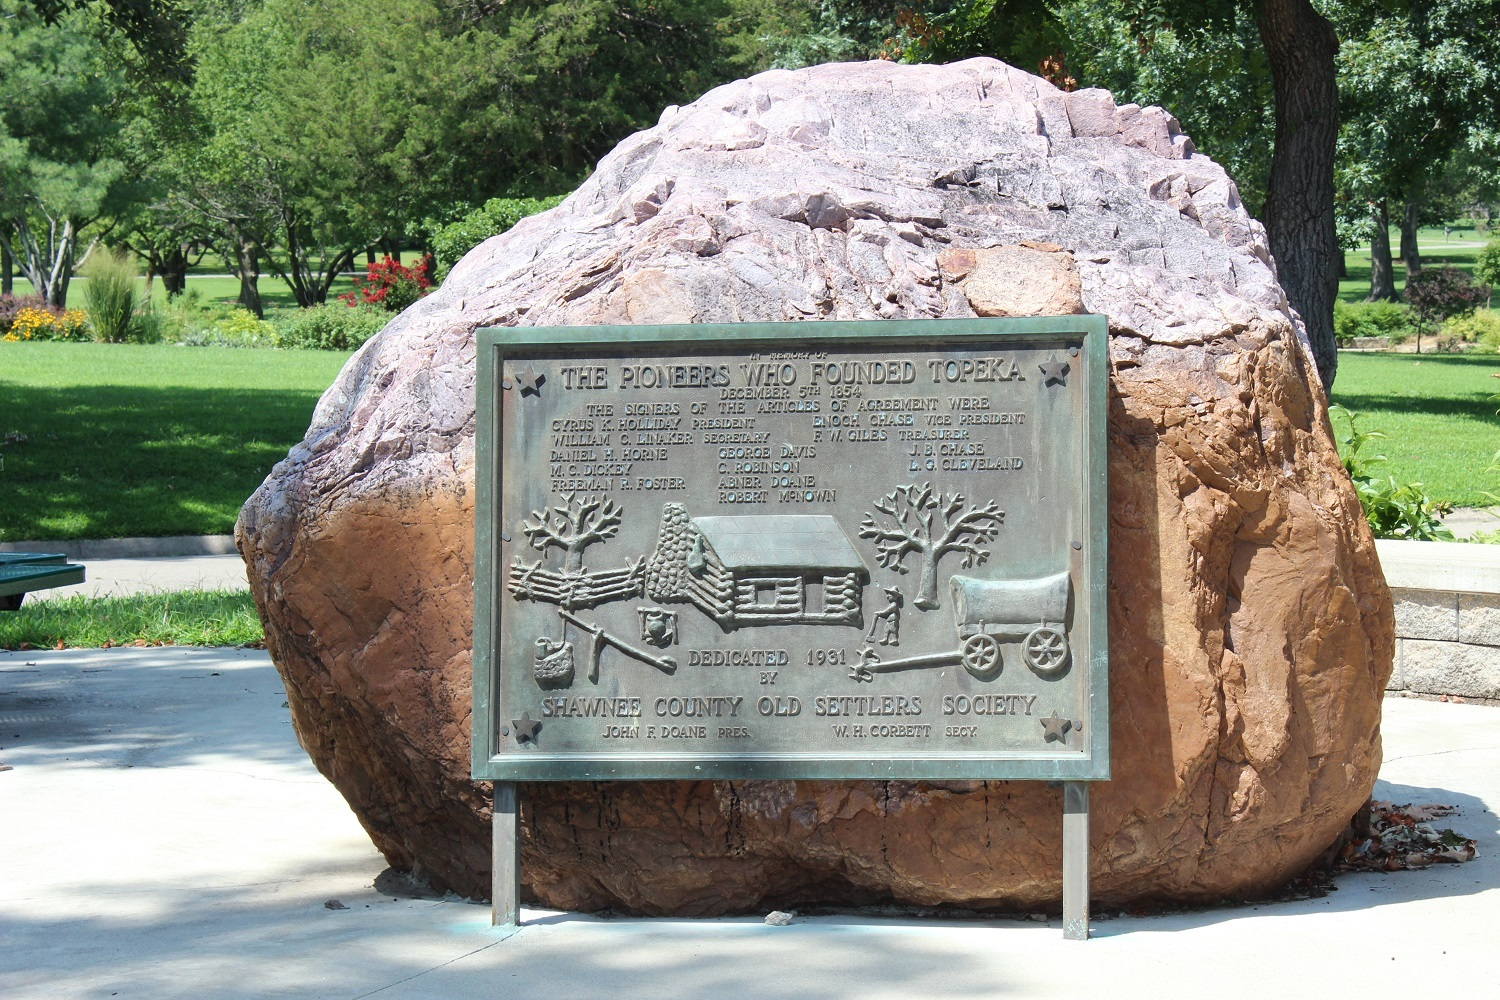 The Pioneers Who Founded Topeka